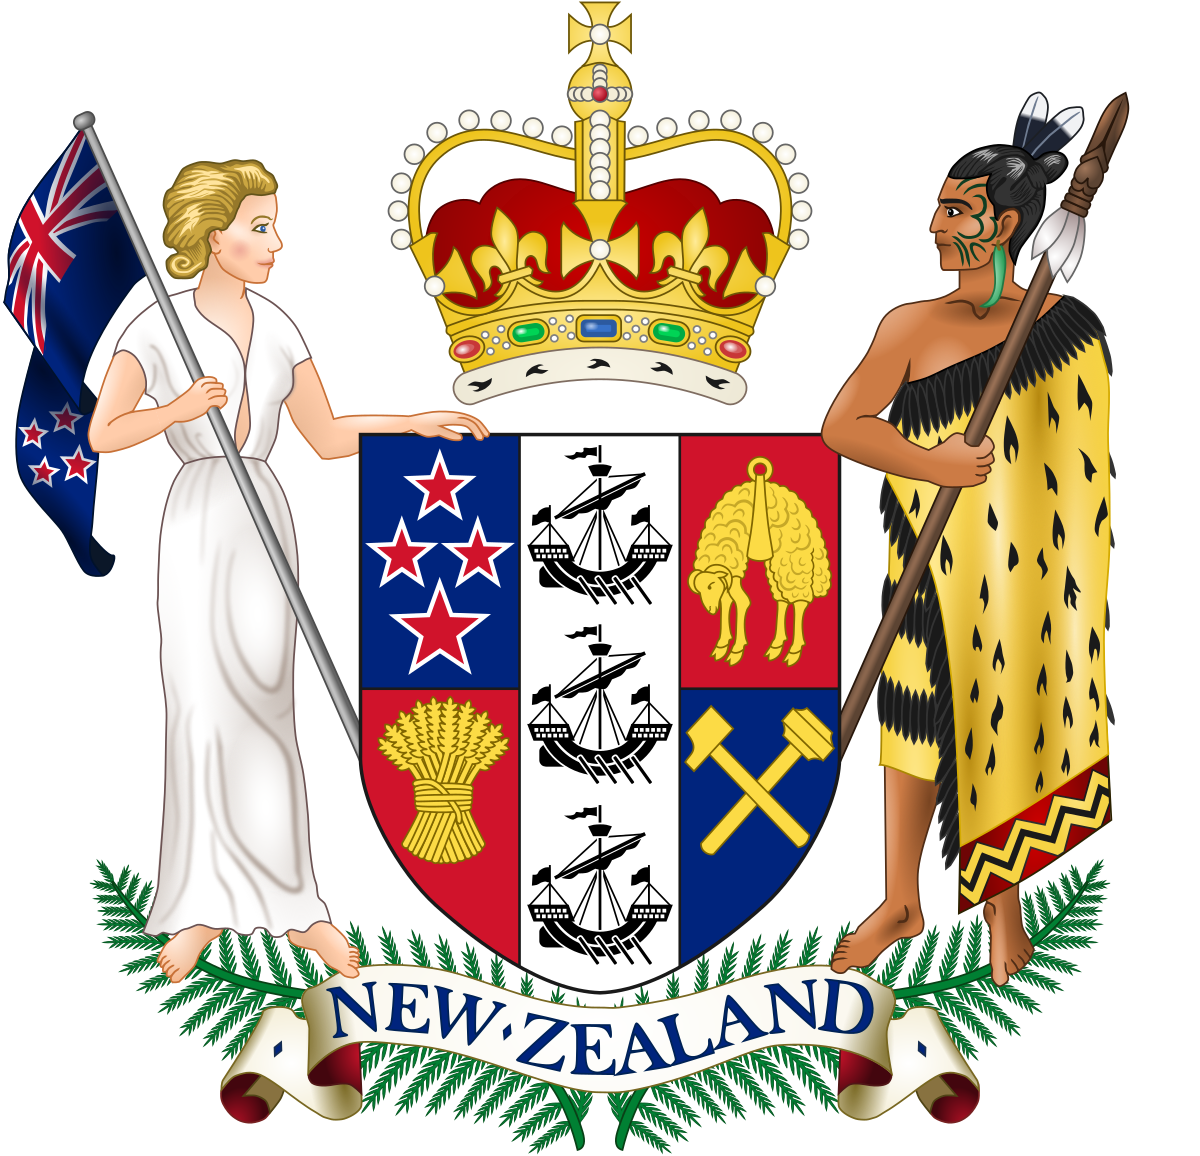 Intolerable acts clipart early settler. Politics of new zealand